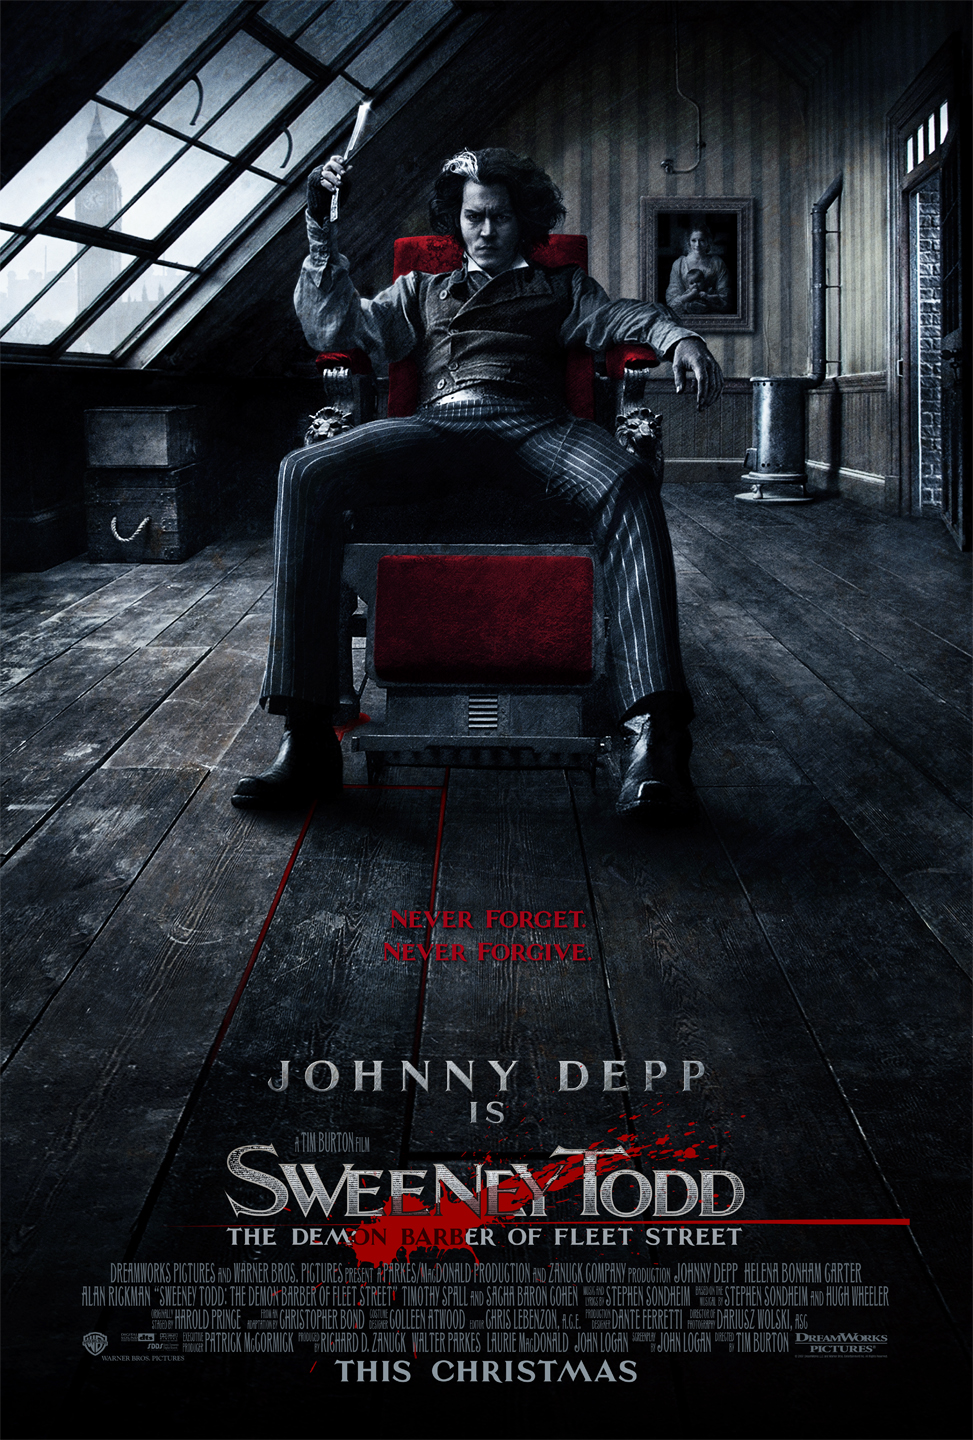 InDepth InterView: John Logan Talks SWEENEY TODD, CORIOLANUS, LINCOLN & More